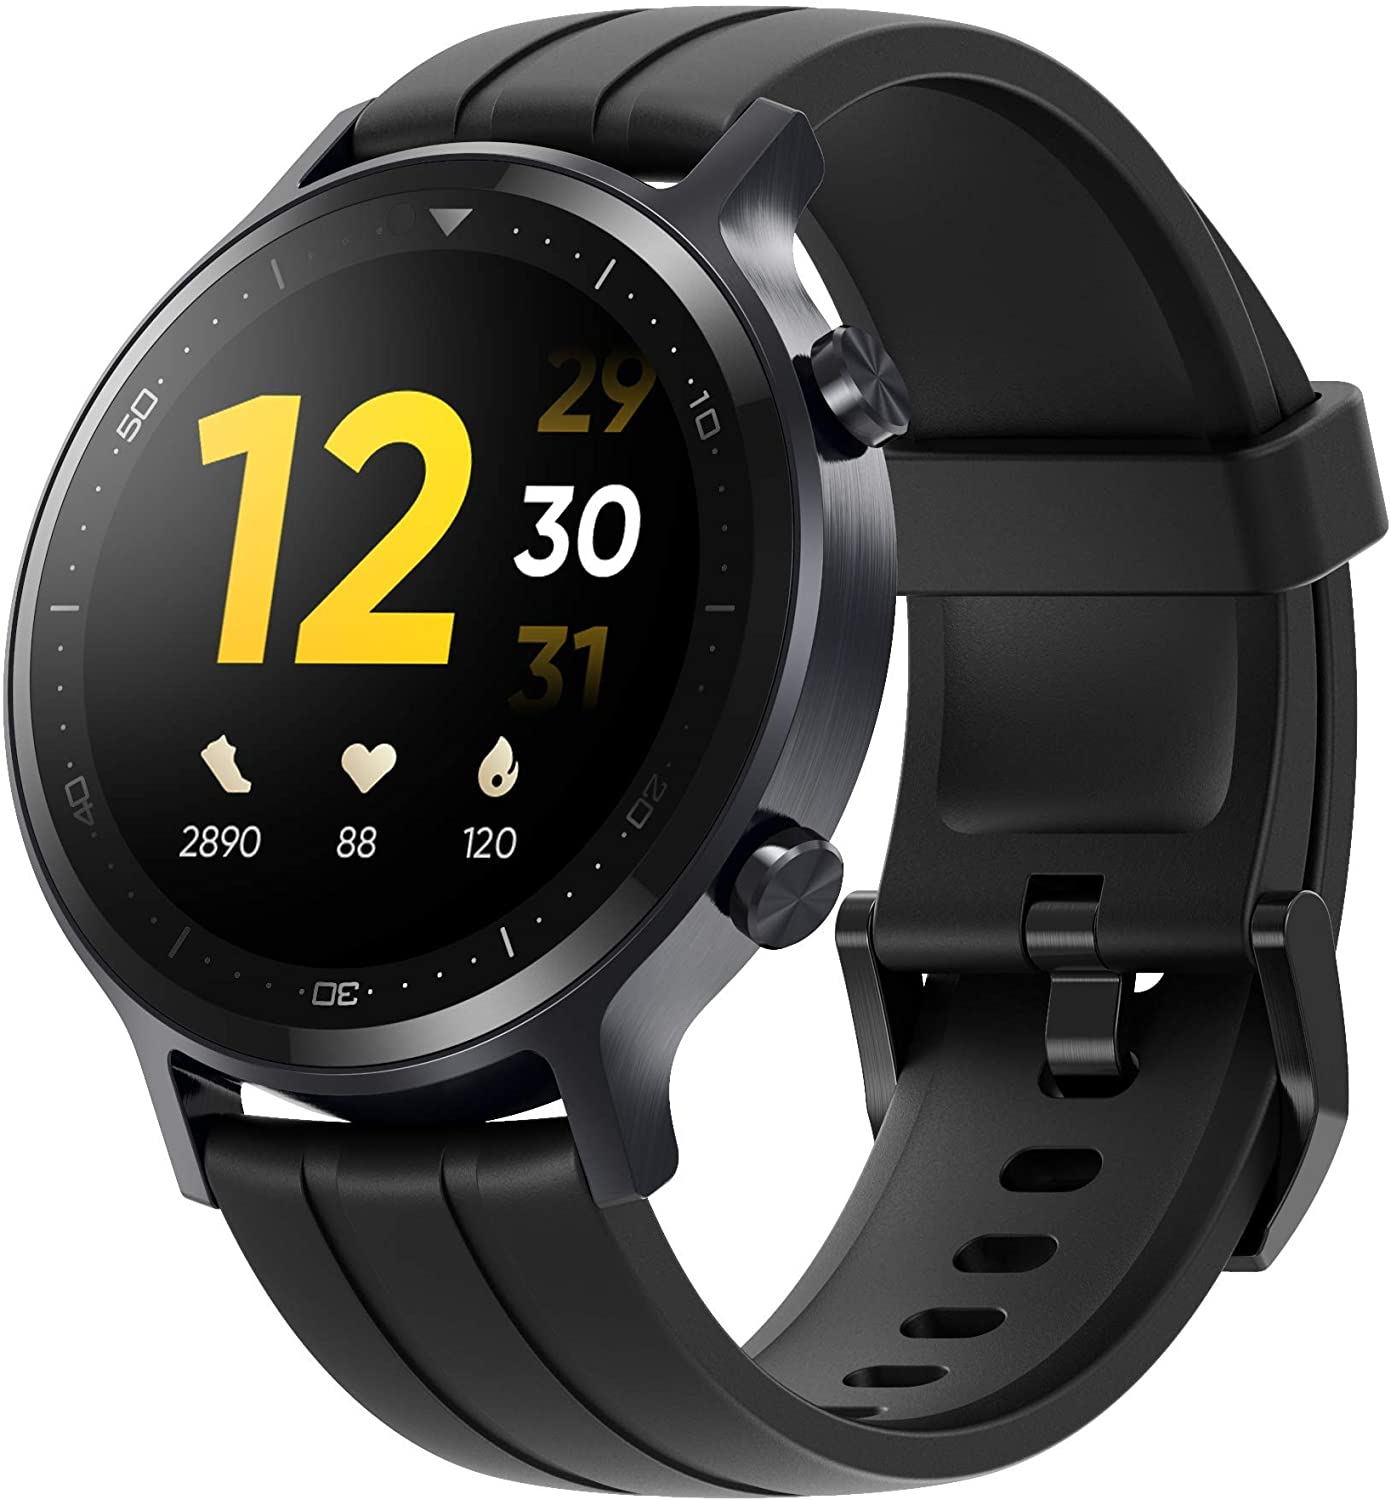 "realme Watch S - 1.3"", TFT-LCD, Android y Bluetooth 5.0, resistencia IP68 - Negro"